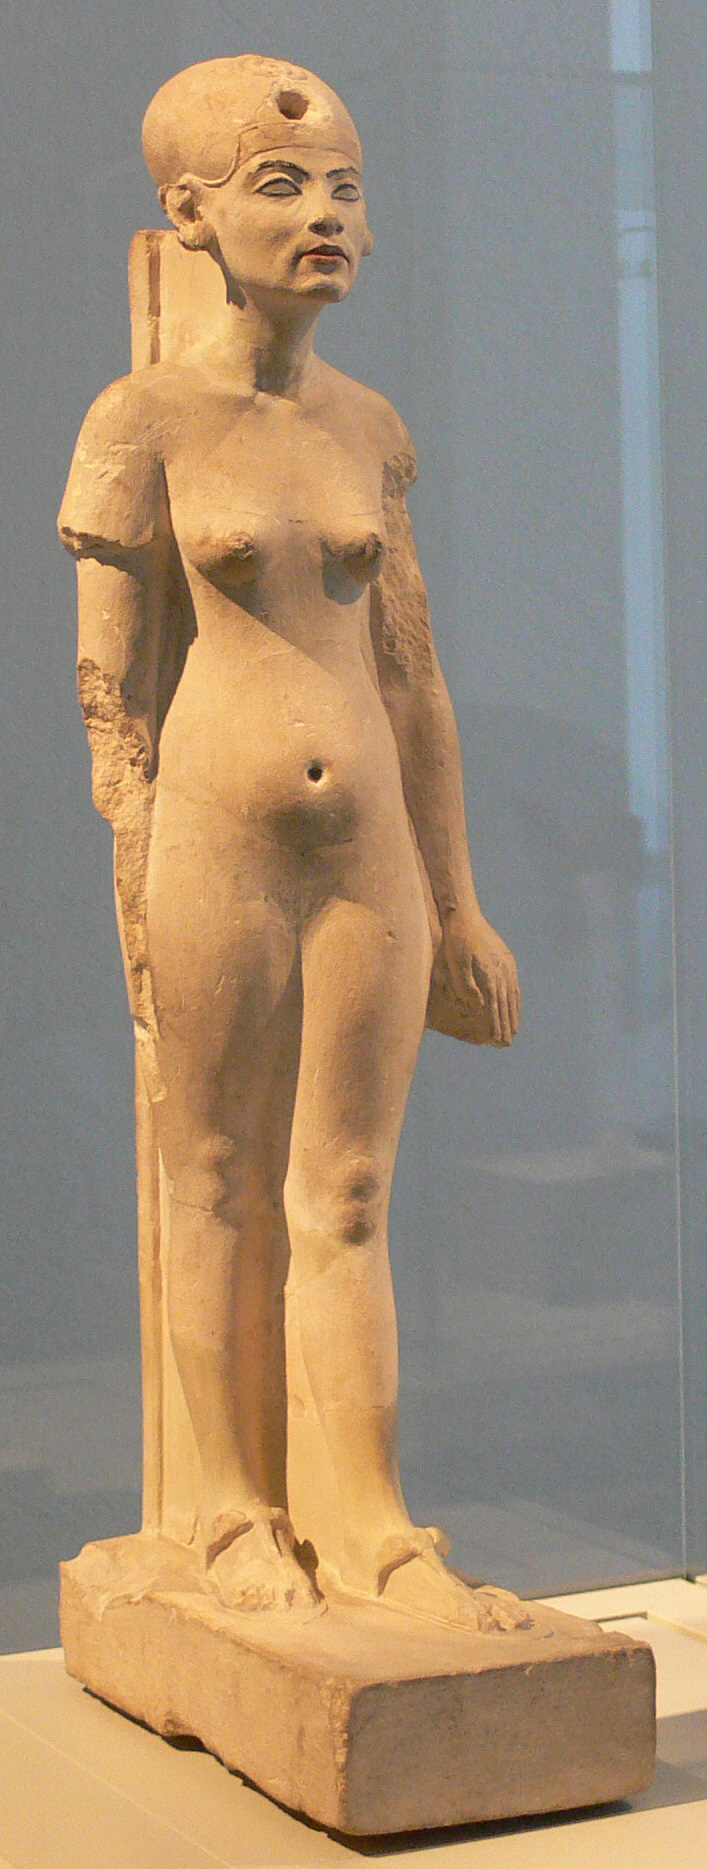 http://upload.wikimedia.org/wikipedia/commons/7/7f/Nefertiti_Standing-striding_Berlin.jpg